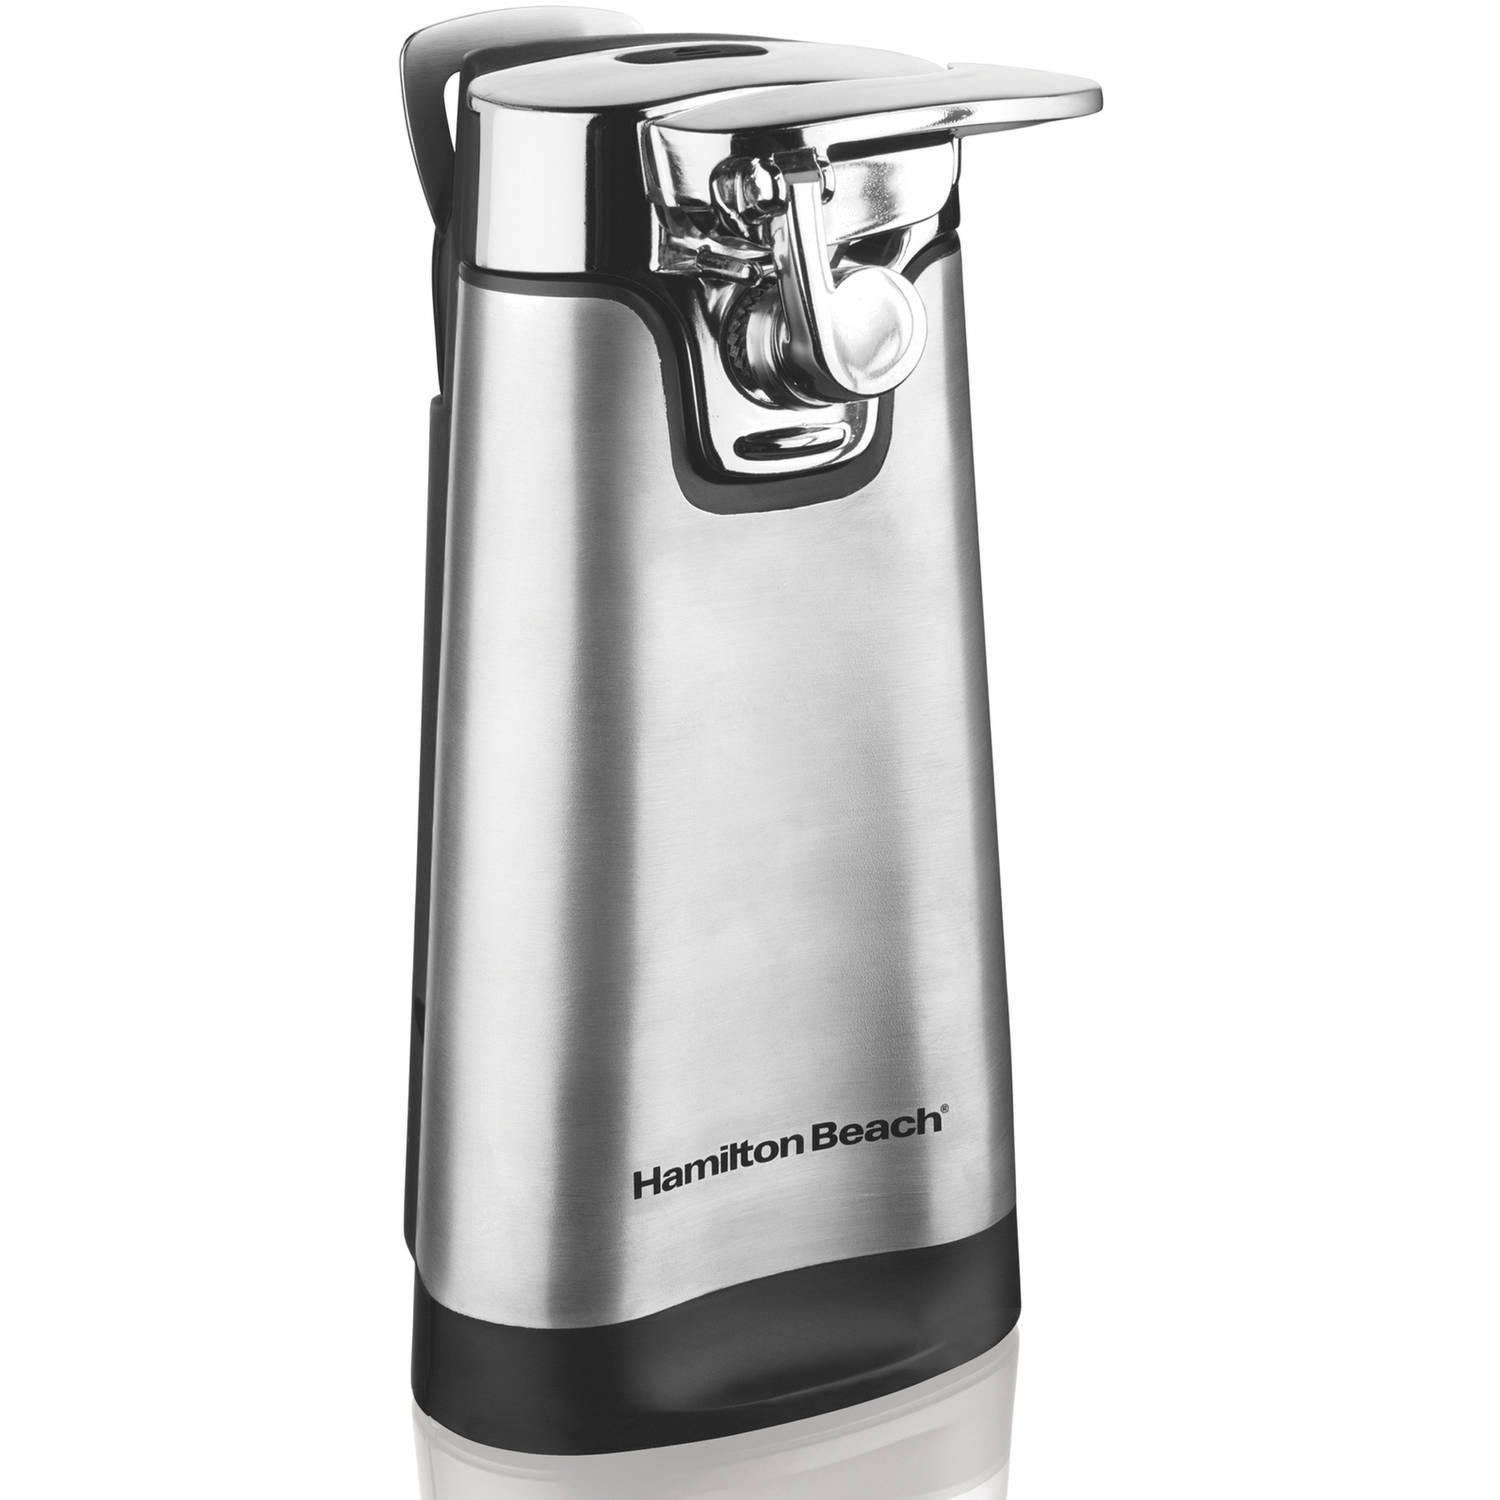 Hamilton Beach Stainless Steel Can Opener | Model# 76778